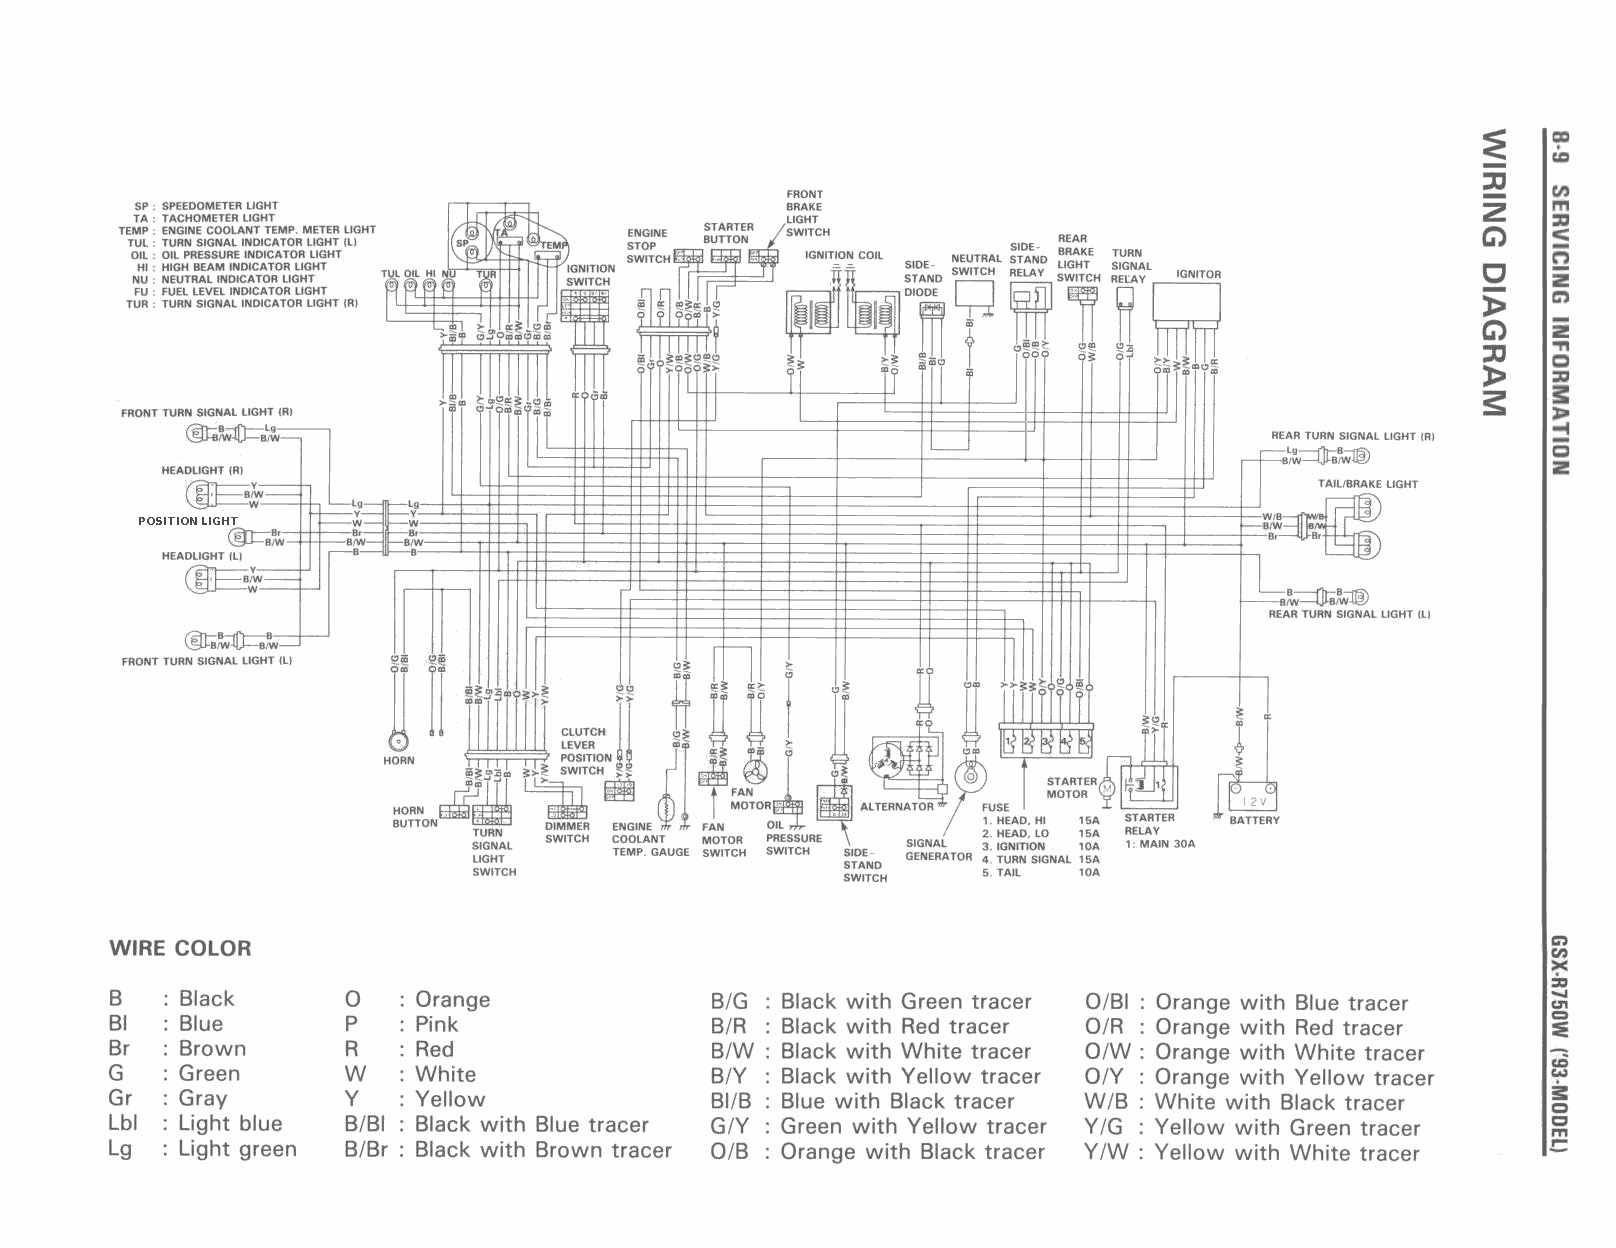 GSXR750 1993 wiring diagram?resize\\=665%2C514 suzuki 06 gsxr wiring 750 diagram bmw r 1150 gs wiring diagram vs800 wiring diagram at eliteediting.co